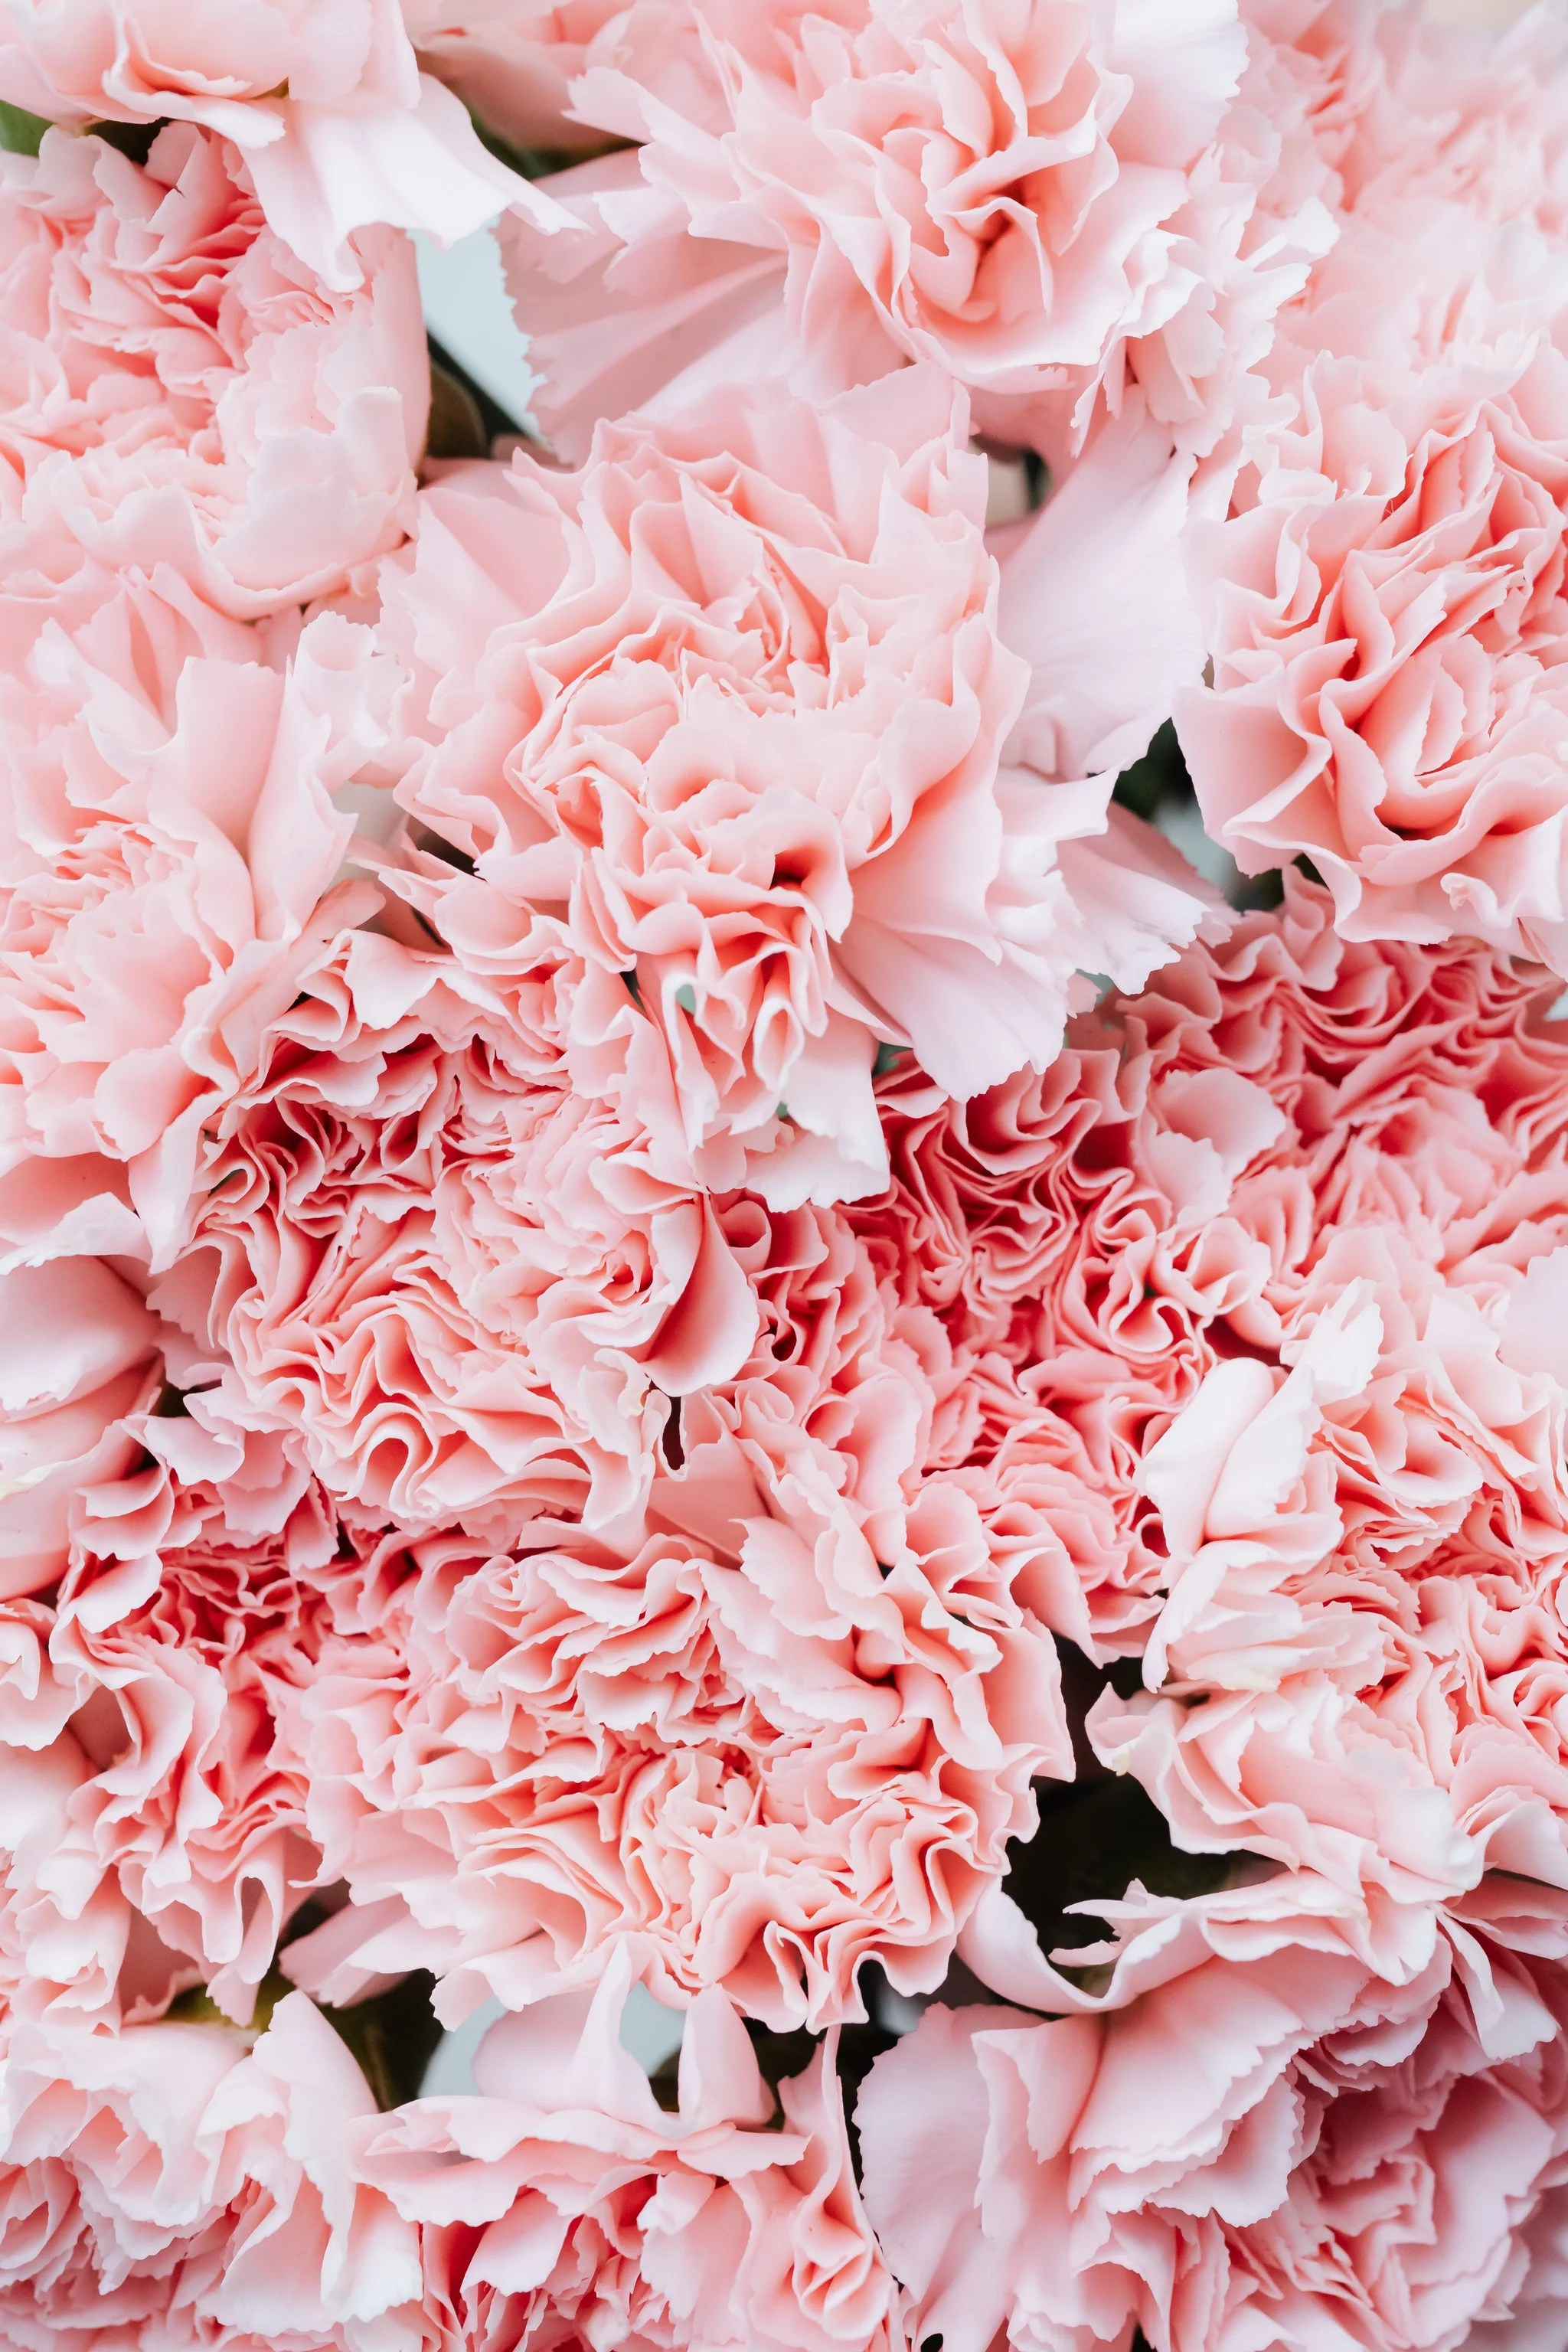 Pink Flower Iphone Wallpaper The Best Ios 14 Wallpaper Ideas That Ll Make Your Phone Look Aesthetically Pleasing Af Popsugar Tech Photo 18